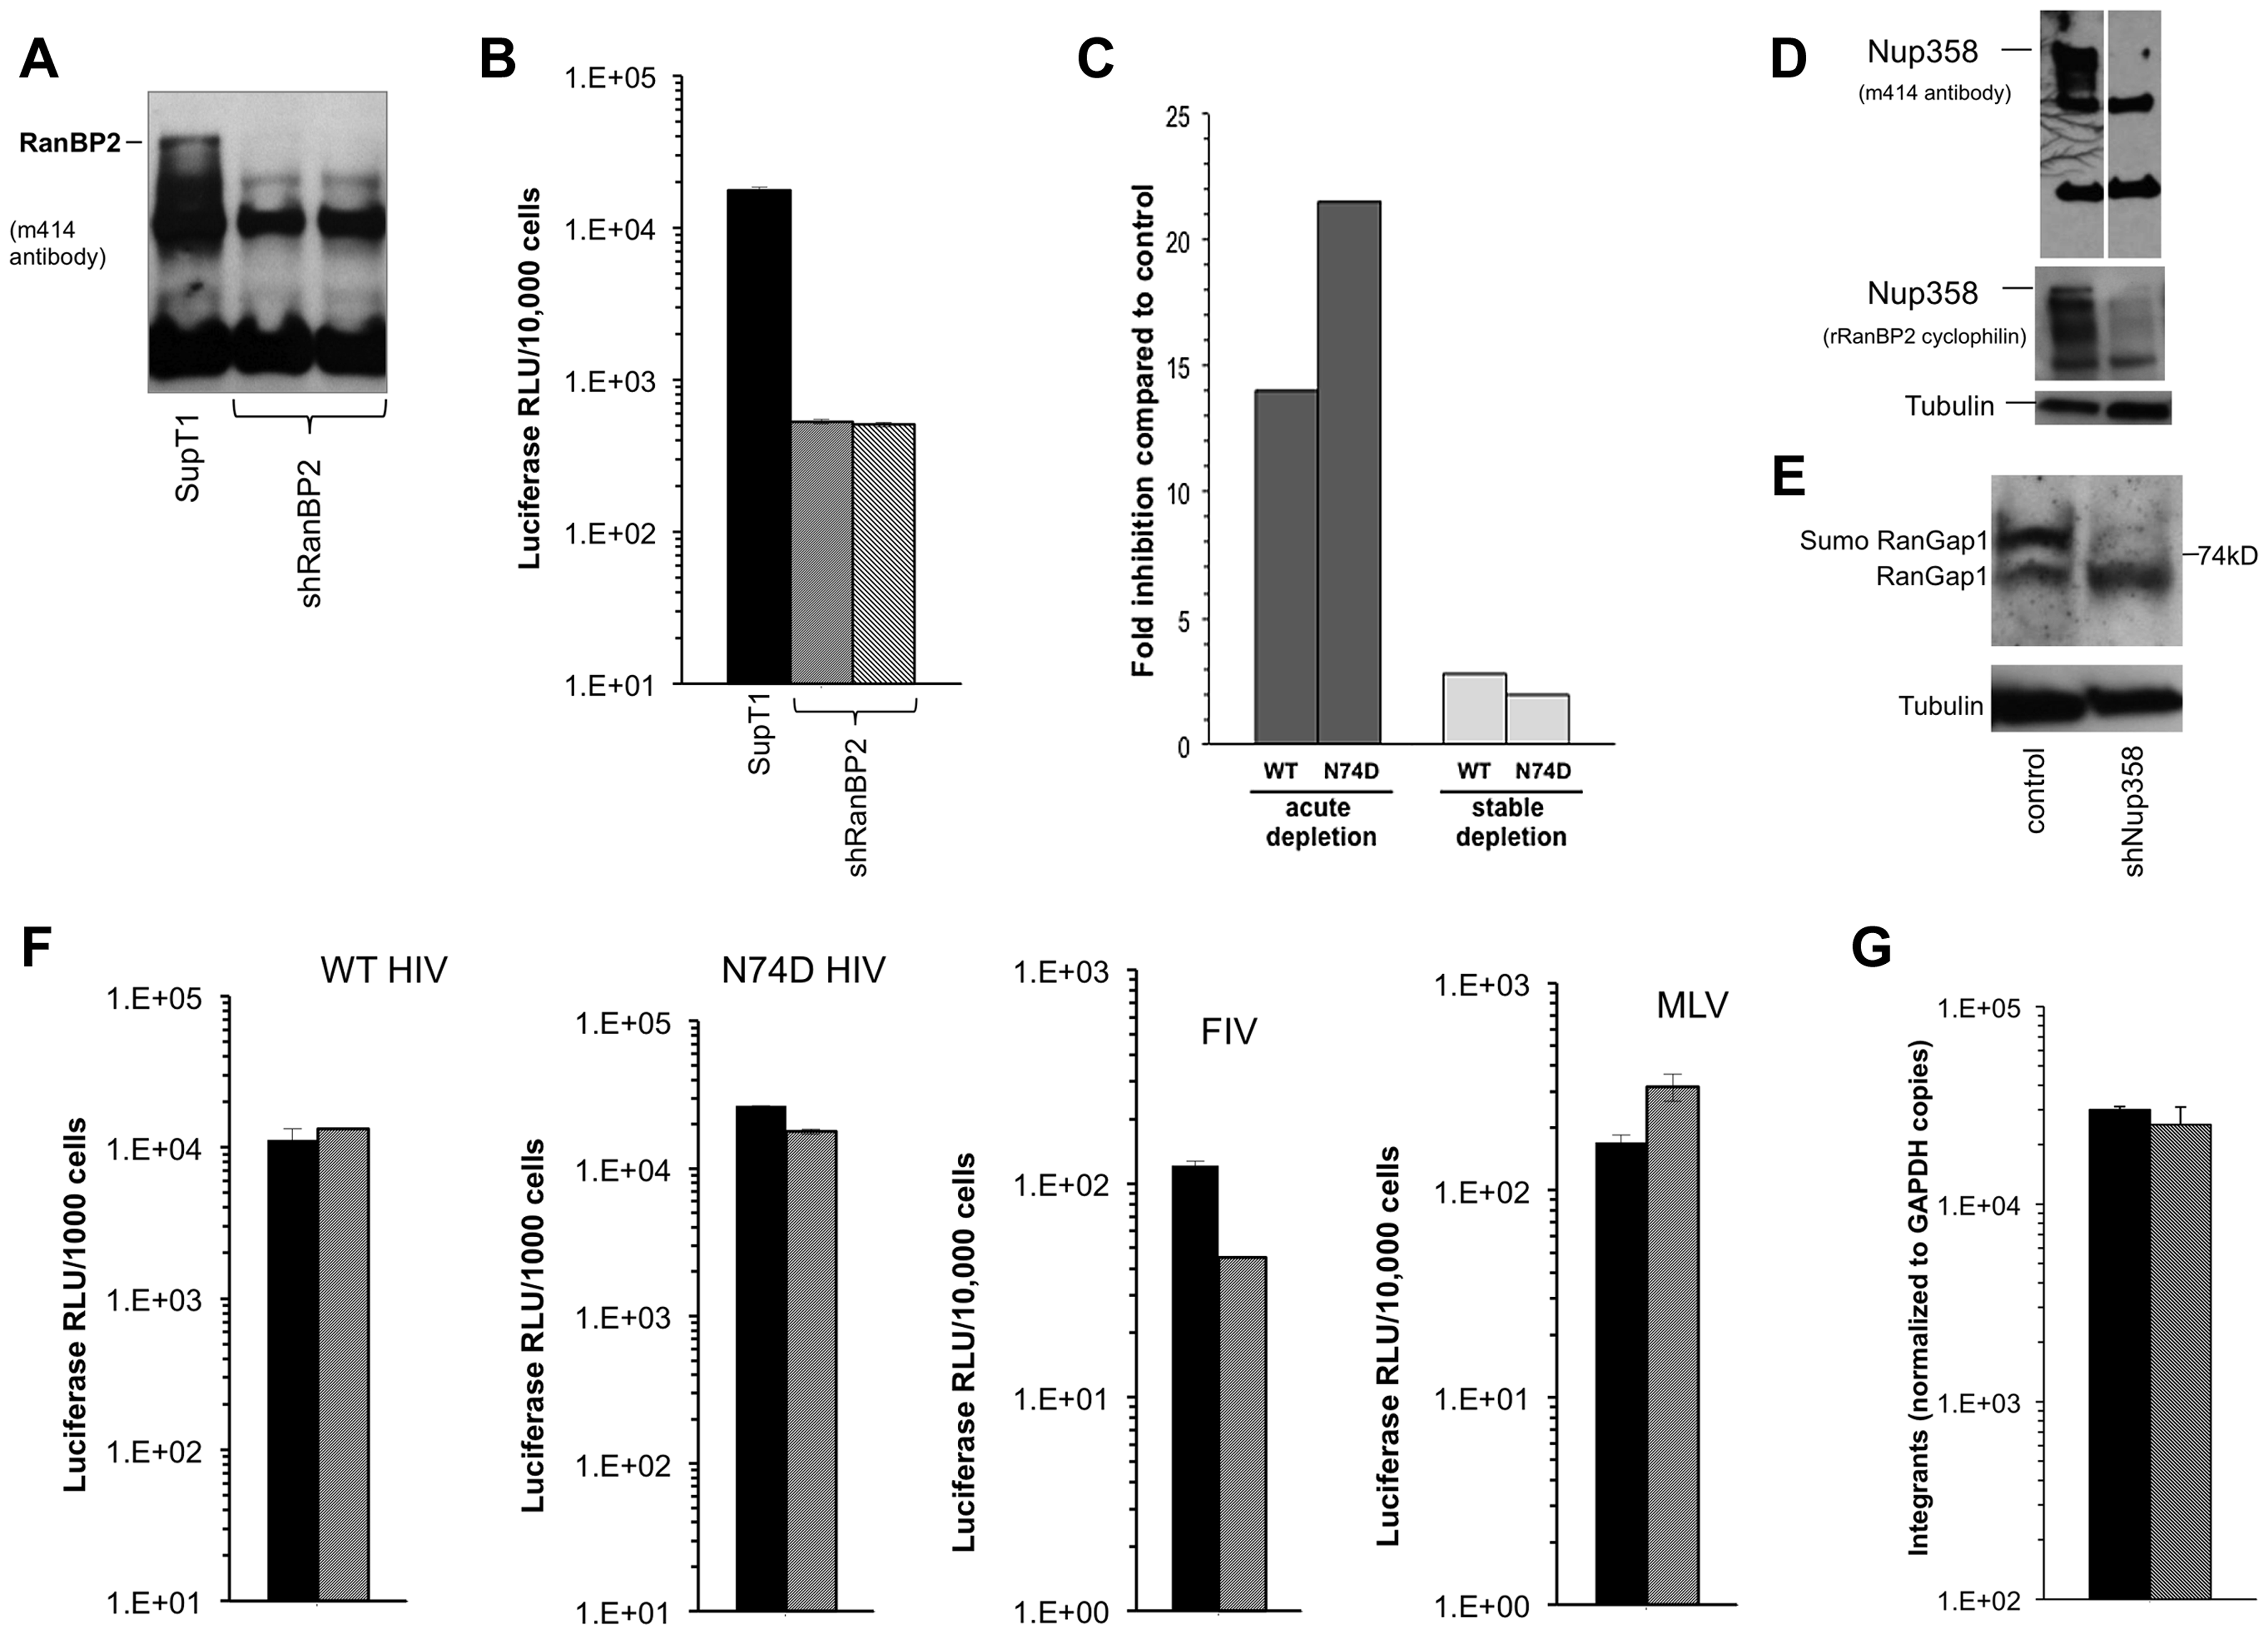 Acute and stable Nup358 depletion in human CD4+ T cells.